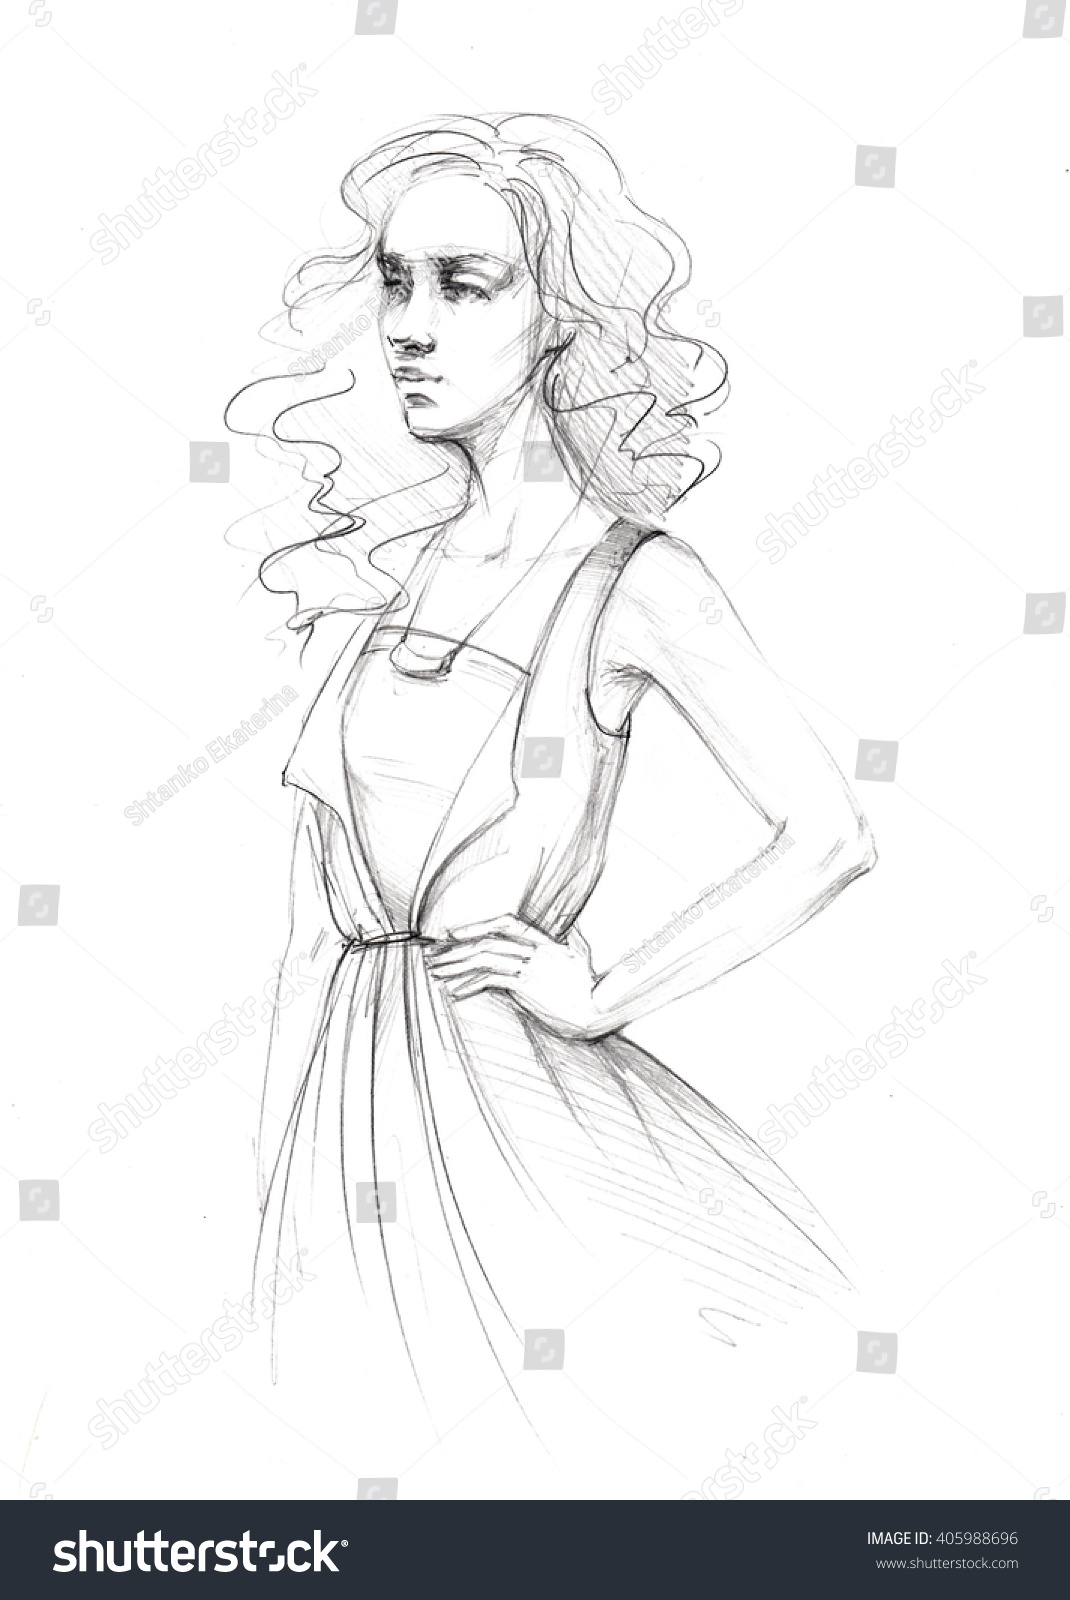 Pencil sketch line of womens clothing dress sketch fashion illustration